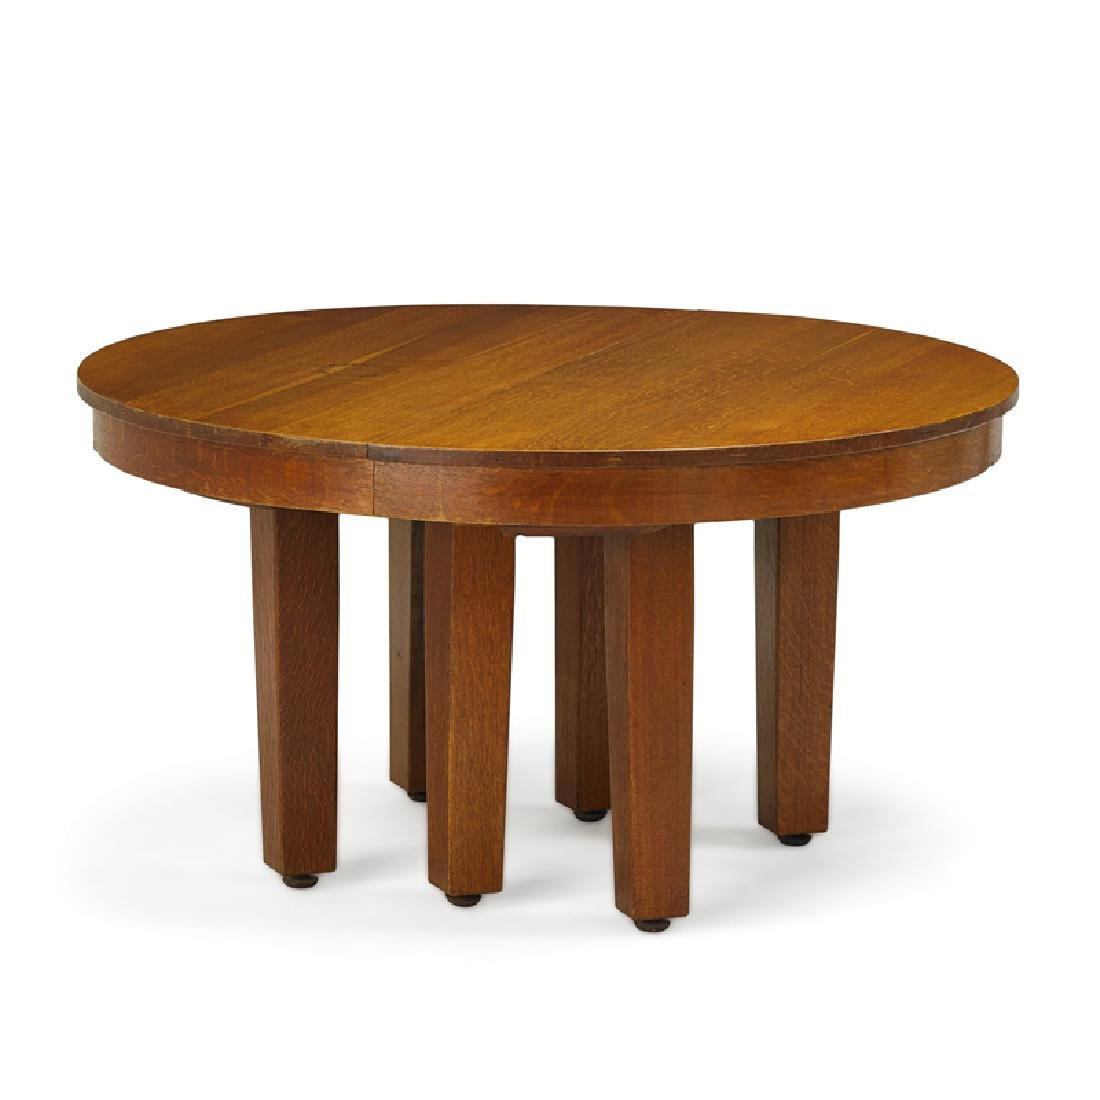 L. & J.G. STICKLEY Dining table (no. 720)